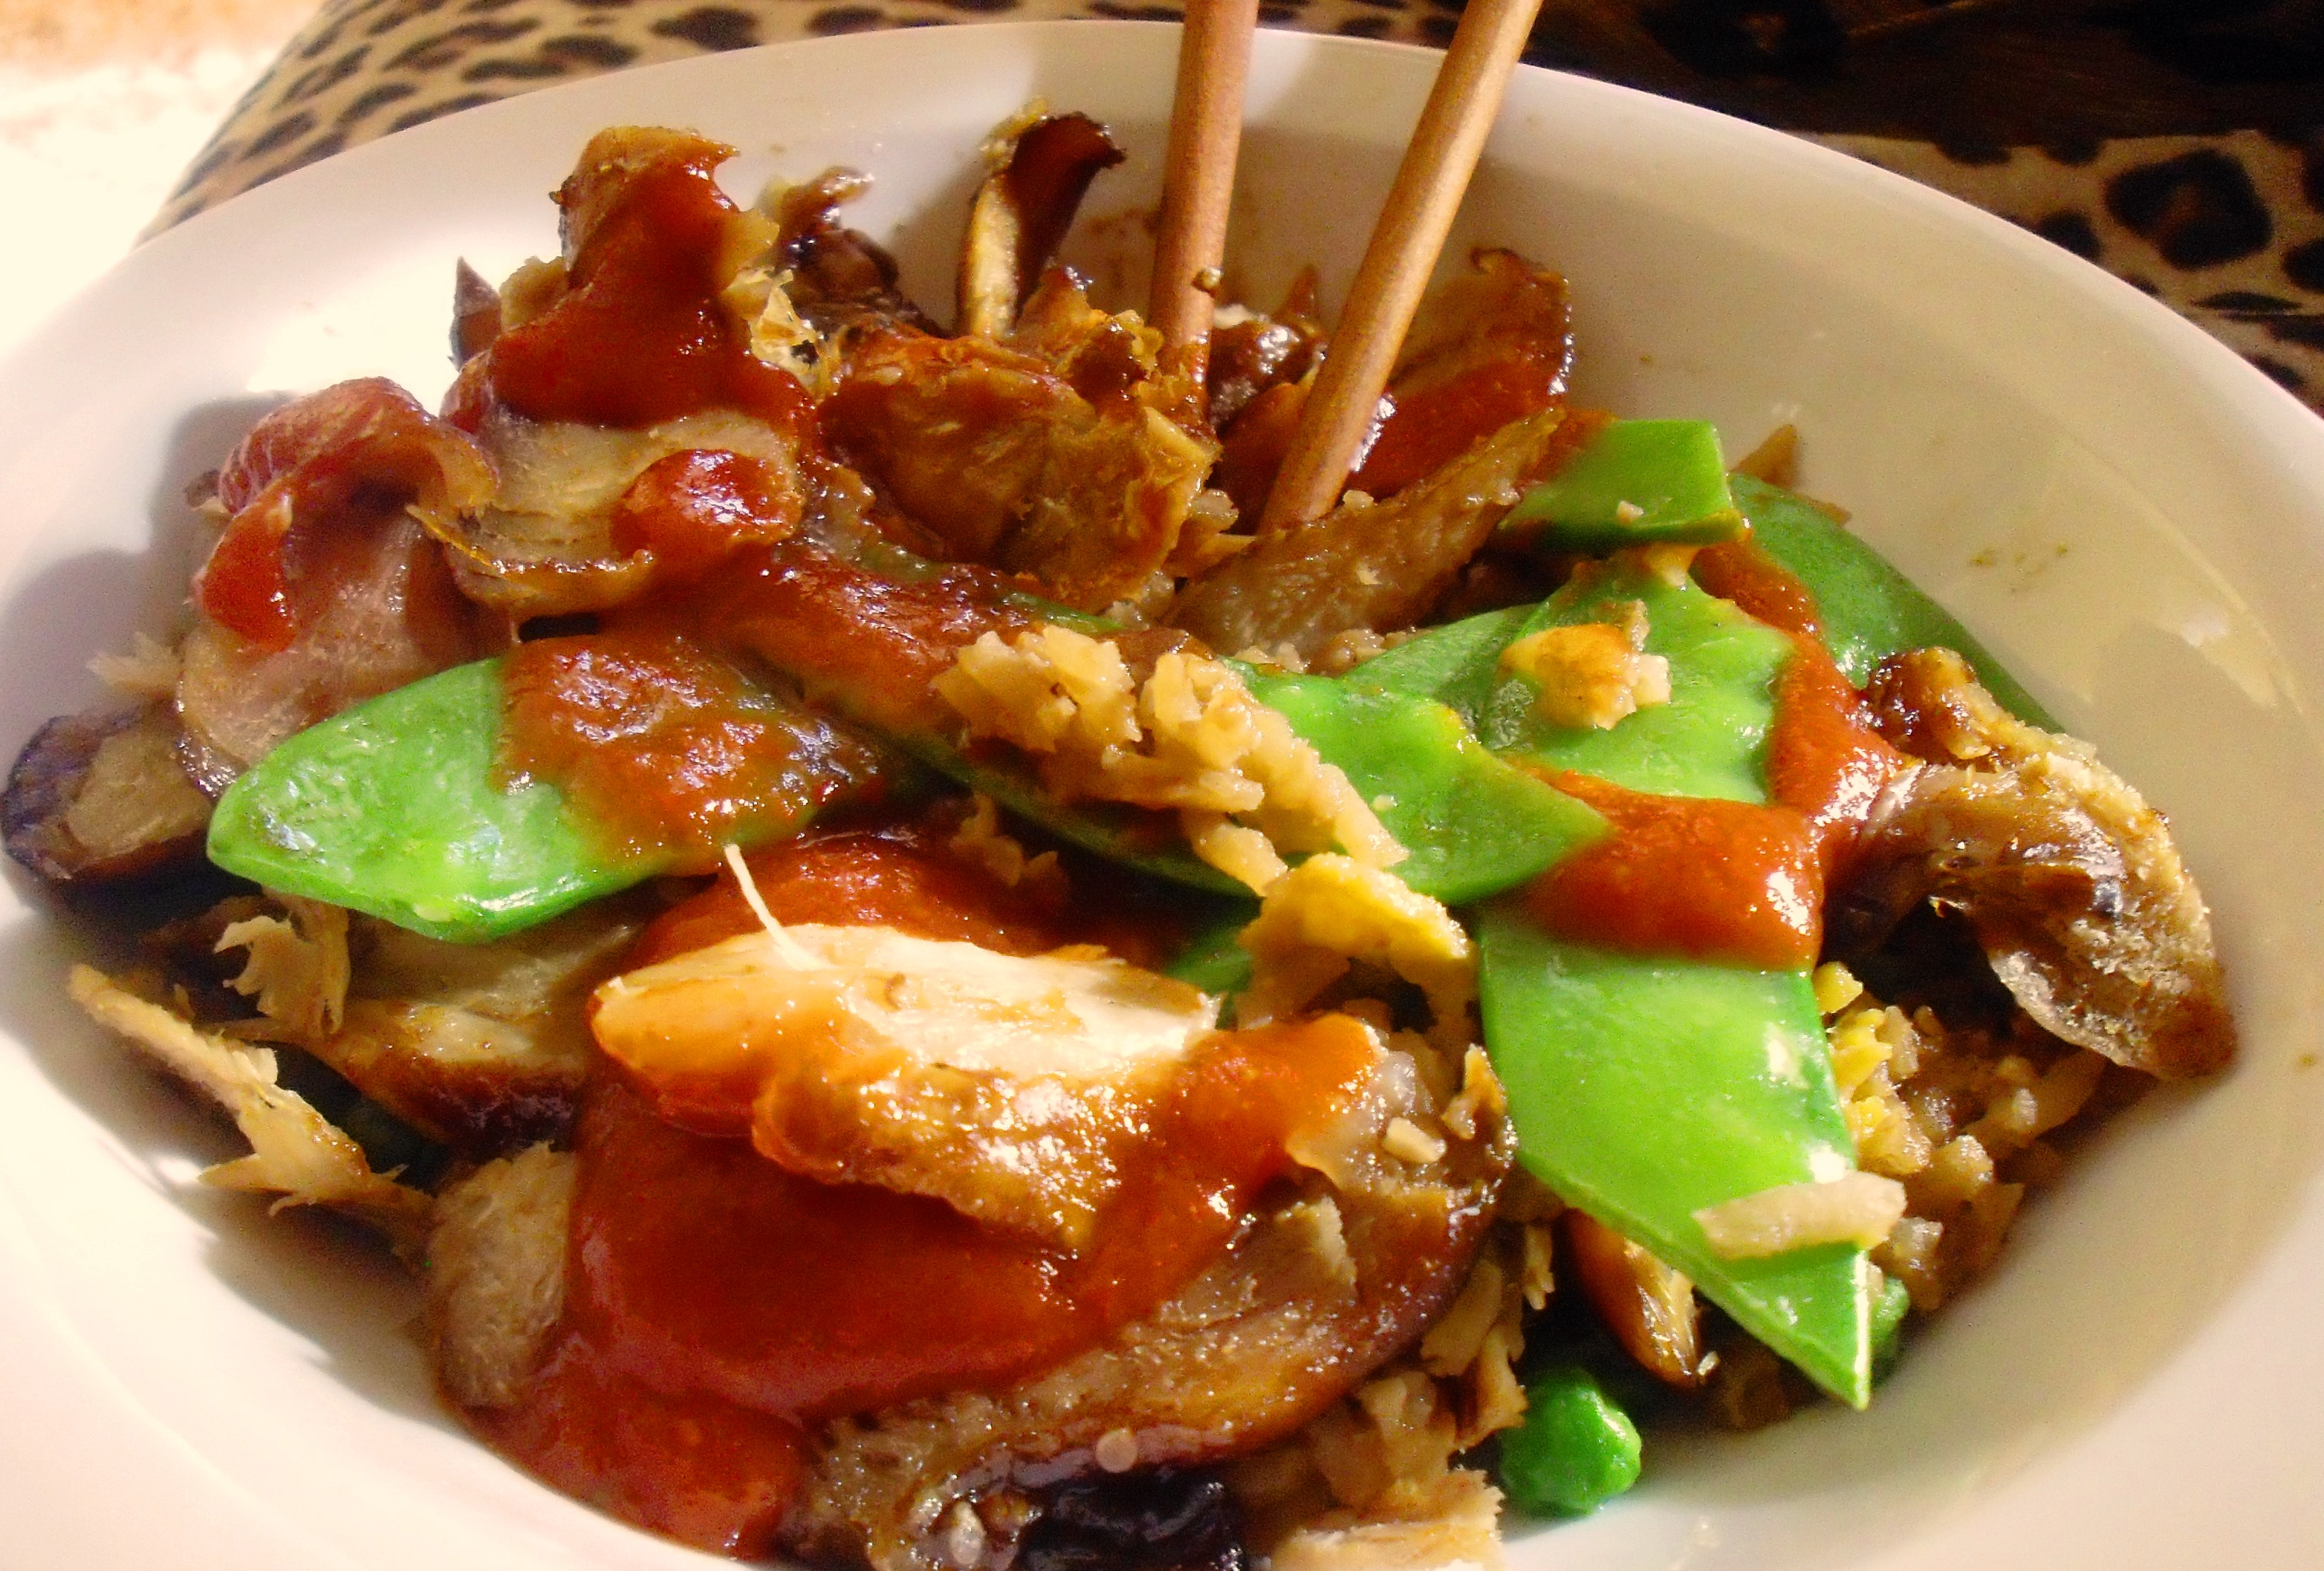 Recipes Course Main Dish Poultry - Chicken Easy Chicken Teriyaki